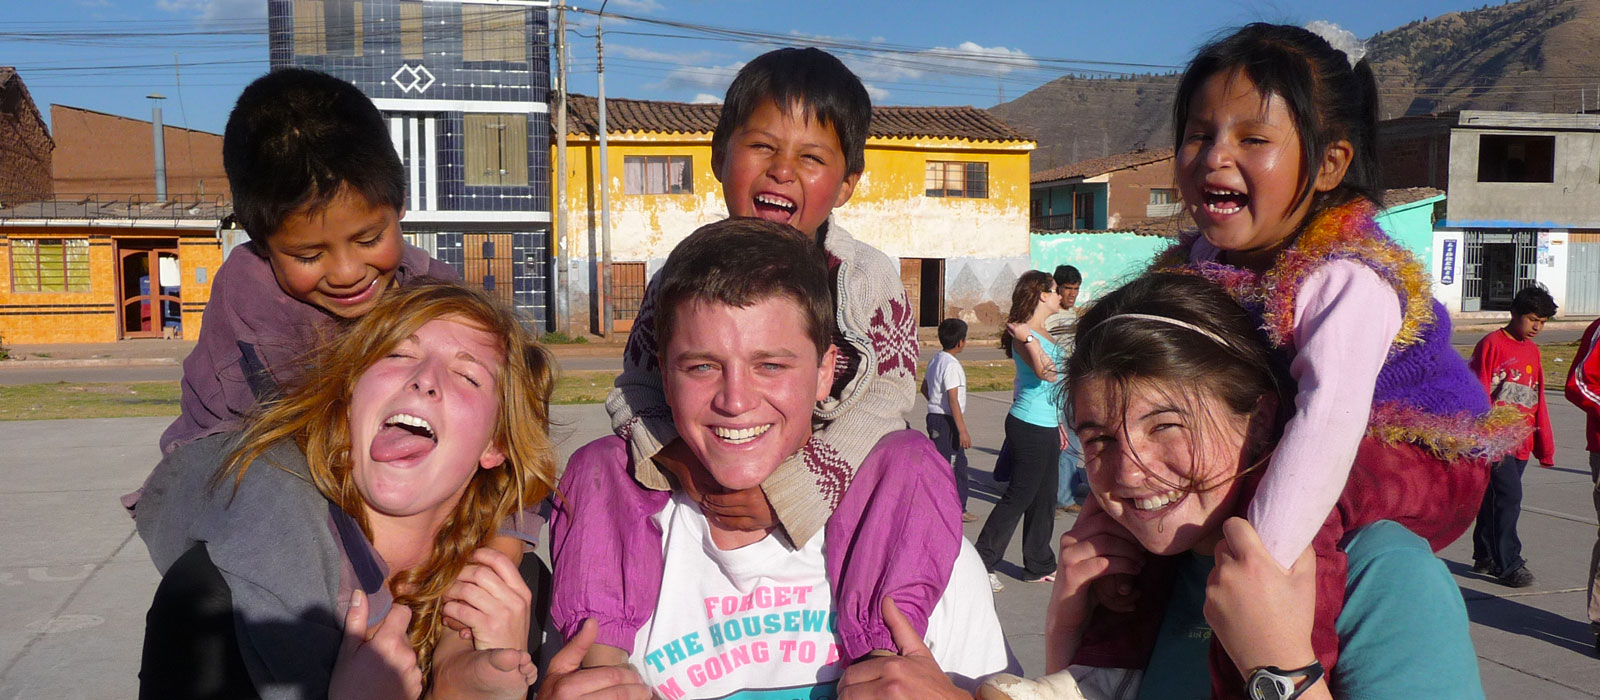 Gap Year Program - Pacific Discovery: Central America Gap Year Semester  2